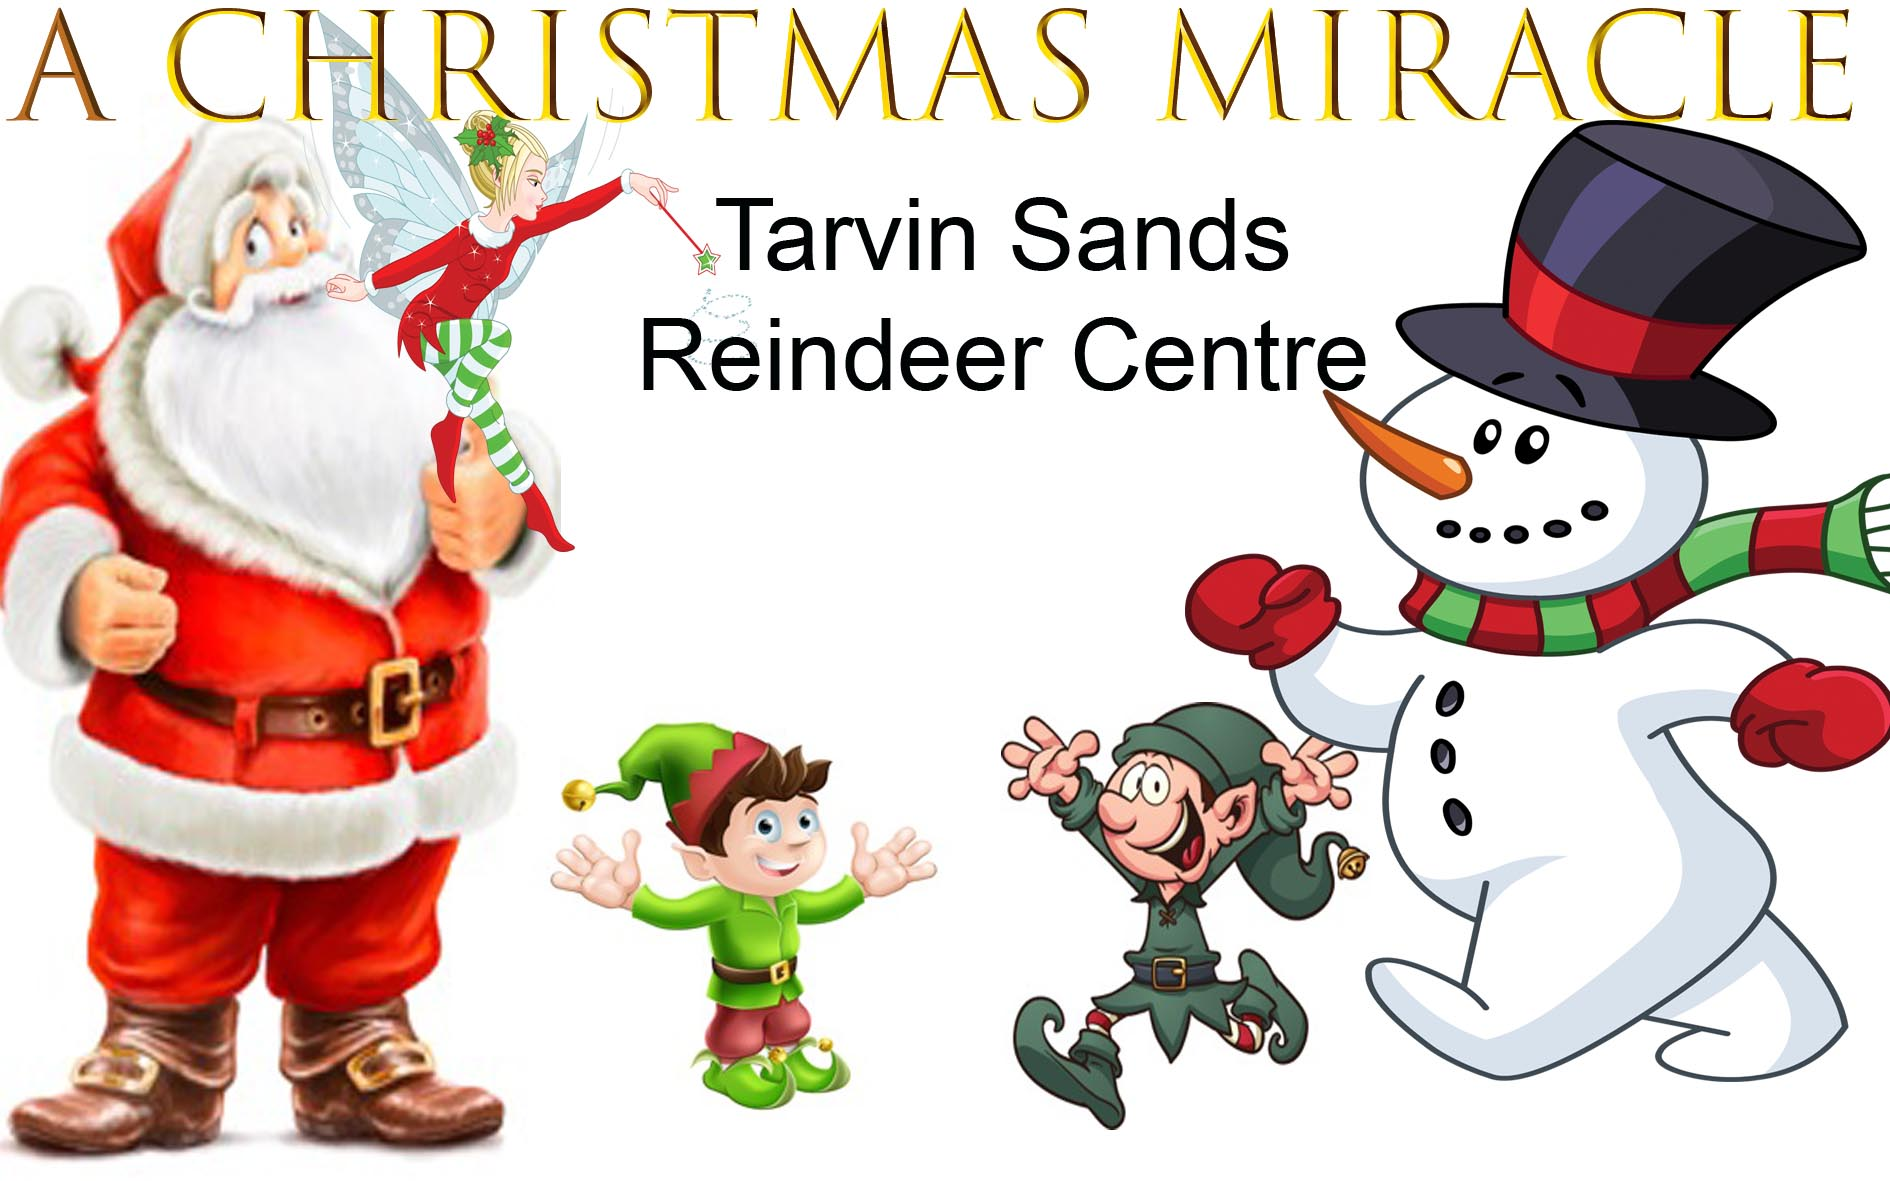 A Christmas Miracle.A Christmas Miracle At Tarvin Sands Fishery And Reindeer